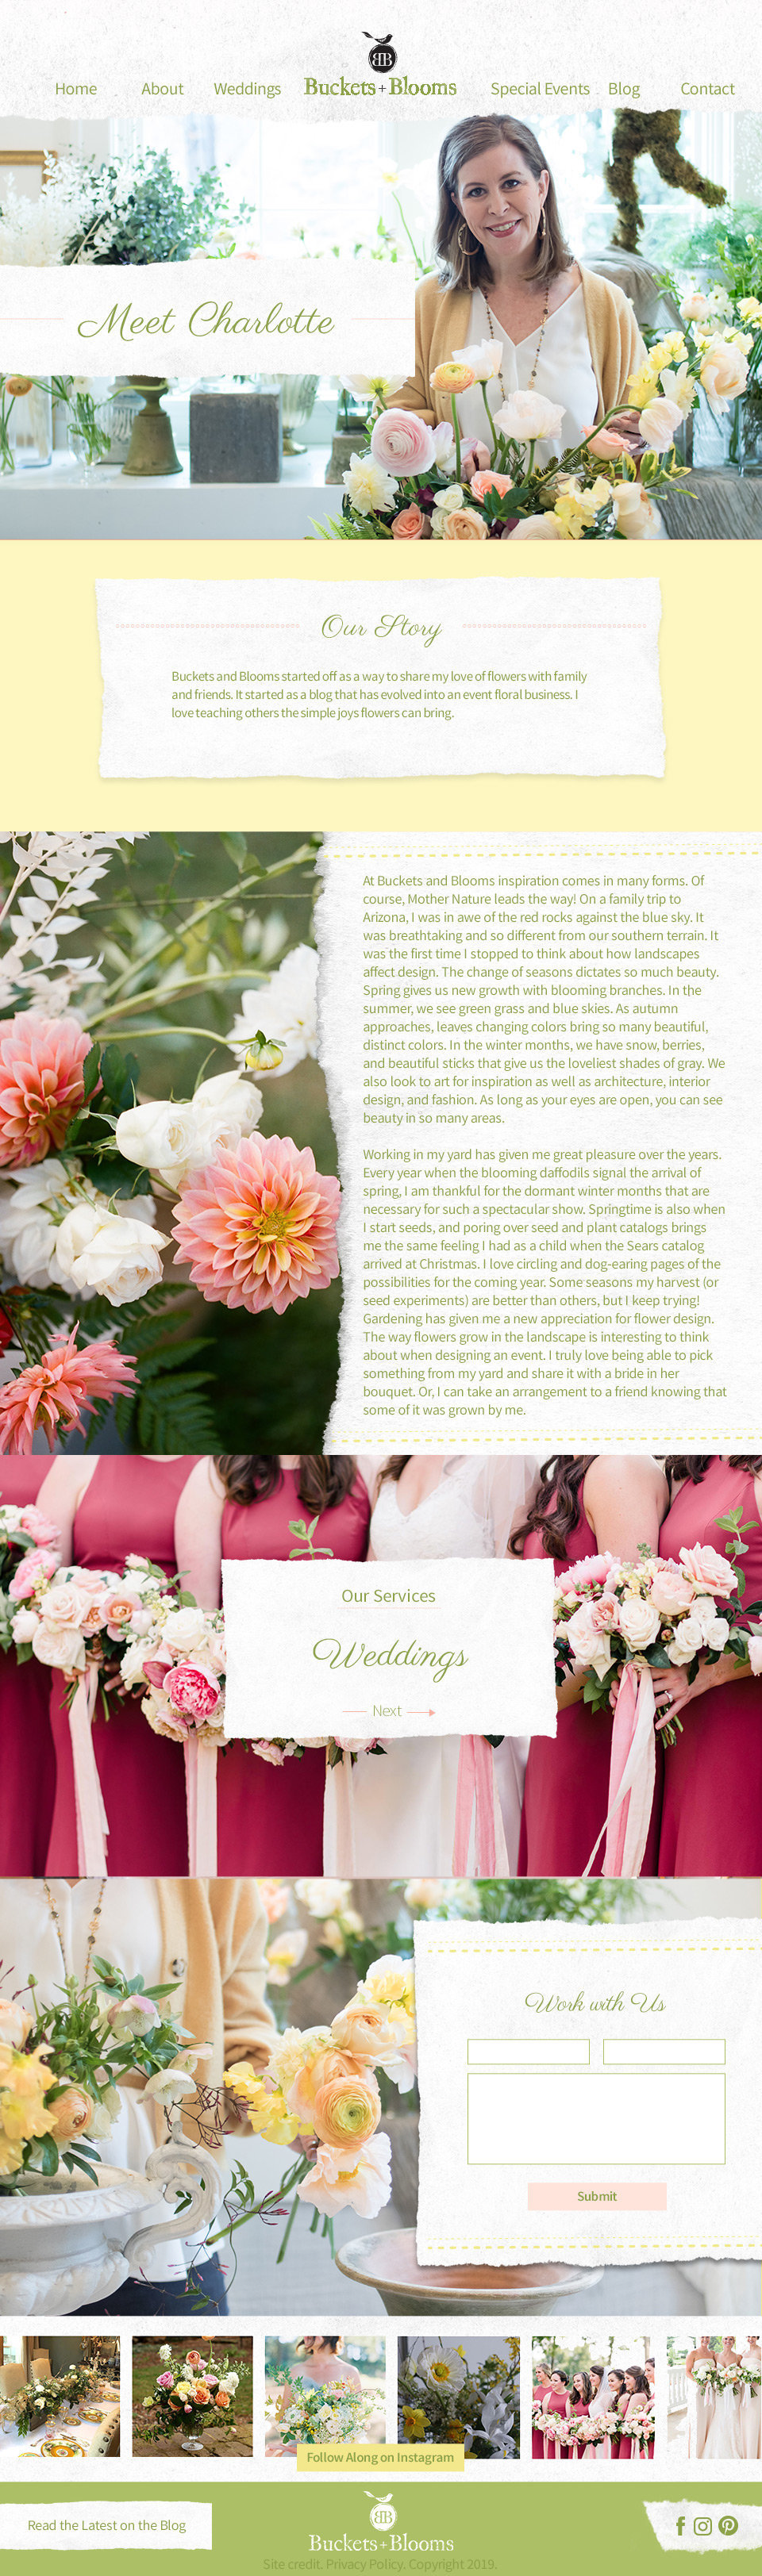 Buckets&Blooms_AboutMockup_Slider1